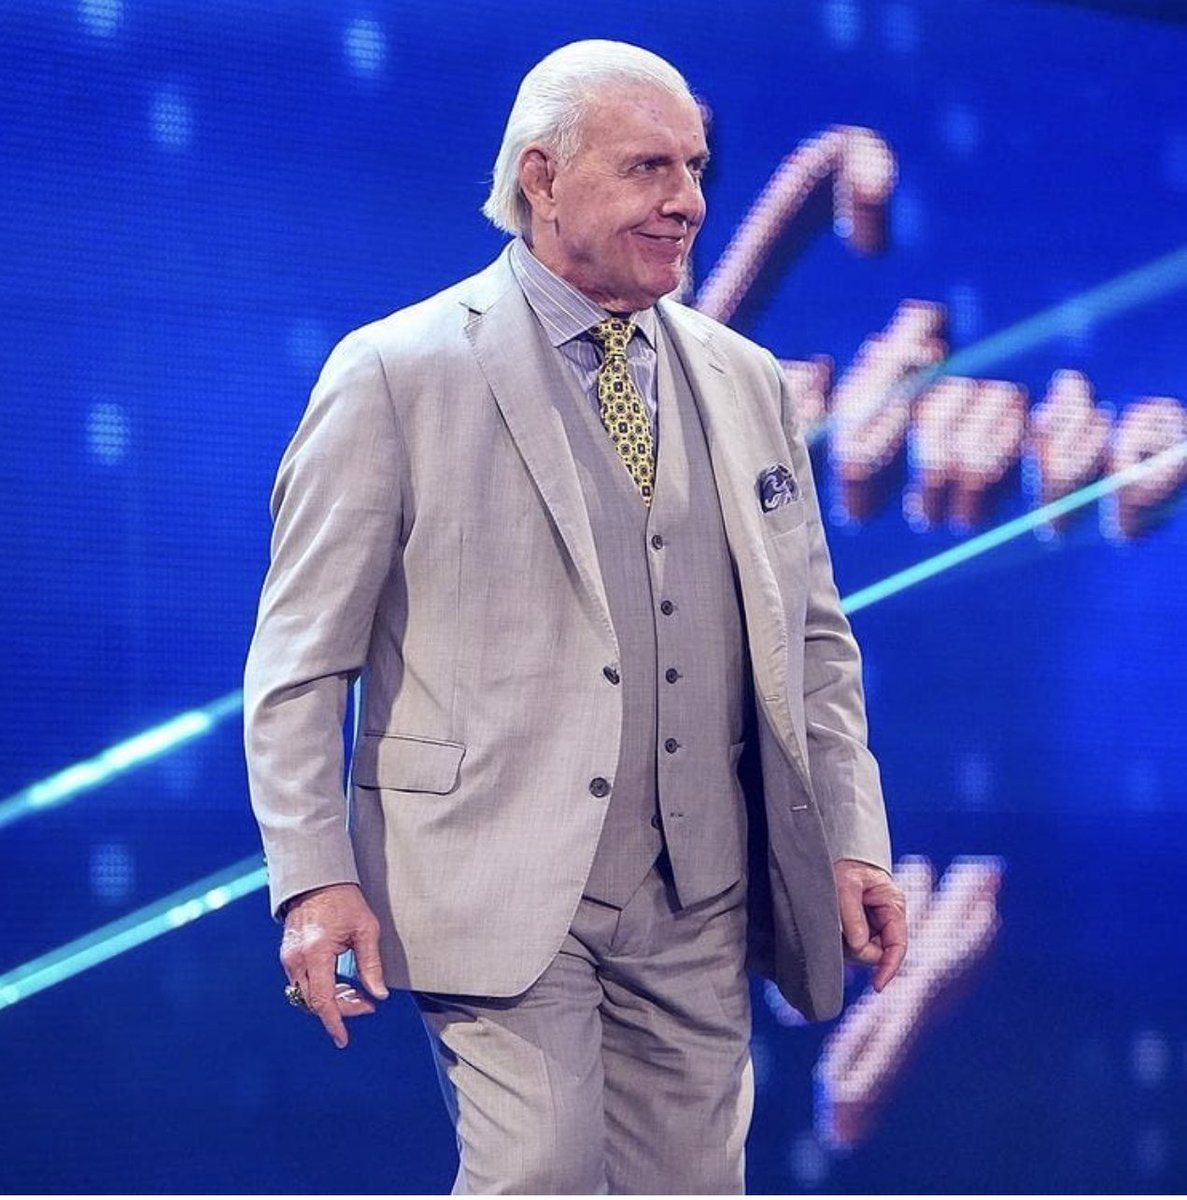 Put Your Best Foot Forward! WOOOOO!